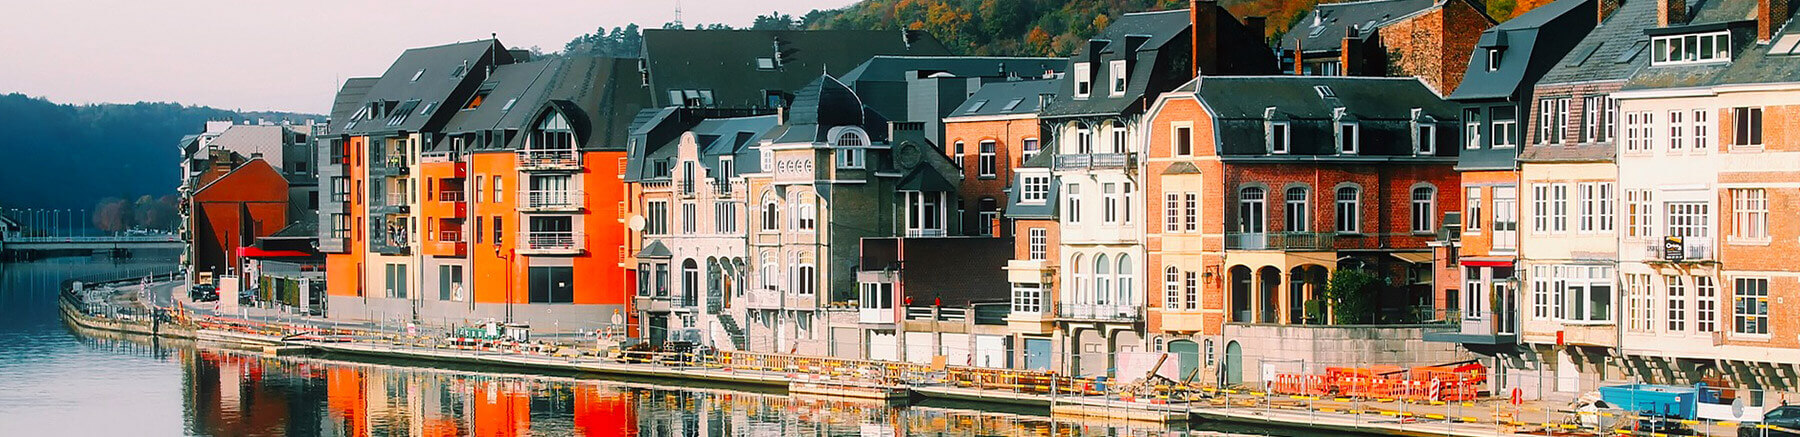 Colourful houses along a river in Belgium